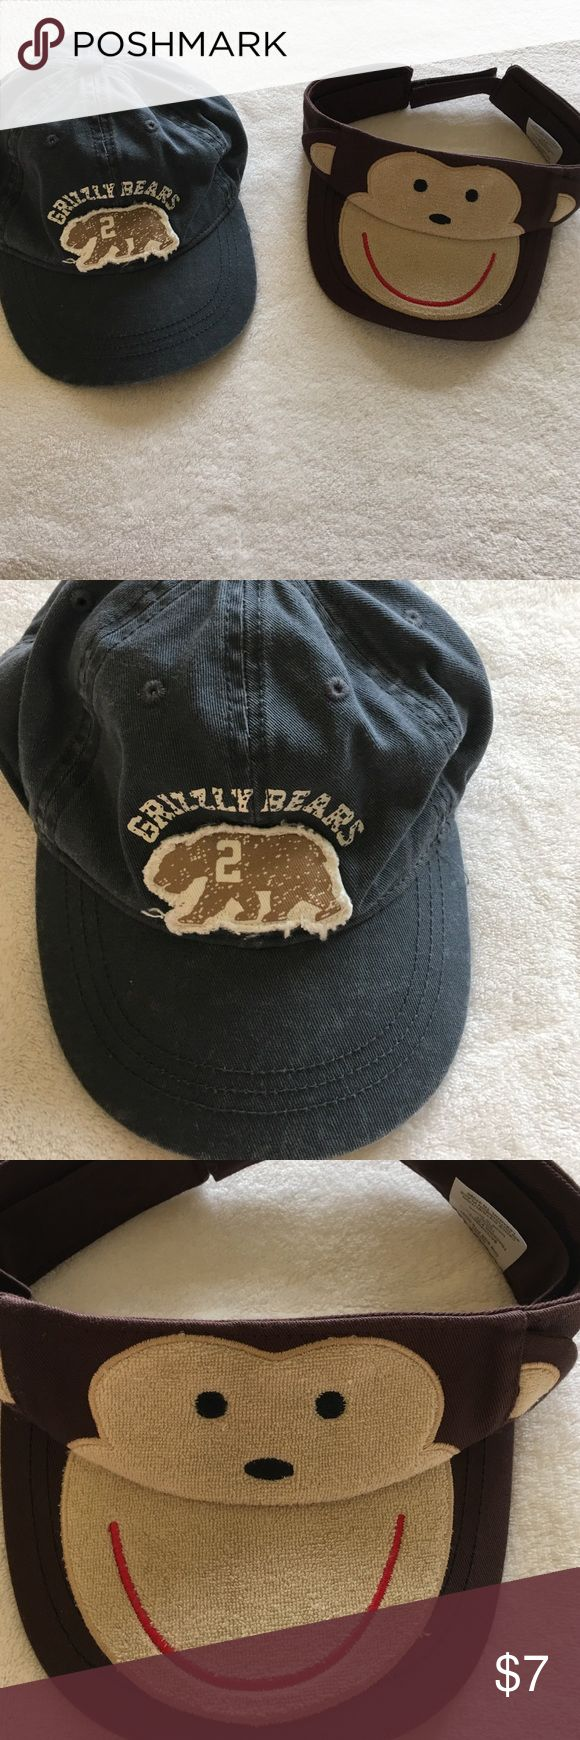 Boys caps NWOT. Grizzly Bears cap is from Children's Place. Size L 2-4 yr. Monkey cap is Infant One Size Fits Most. Accessories Hats